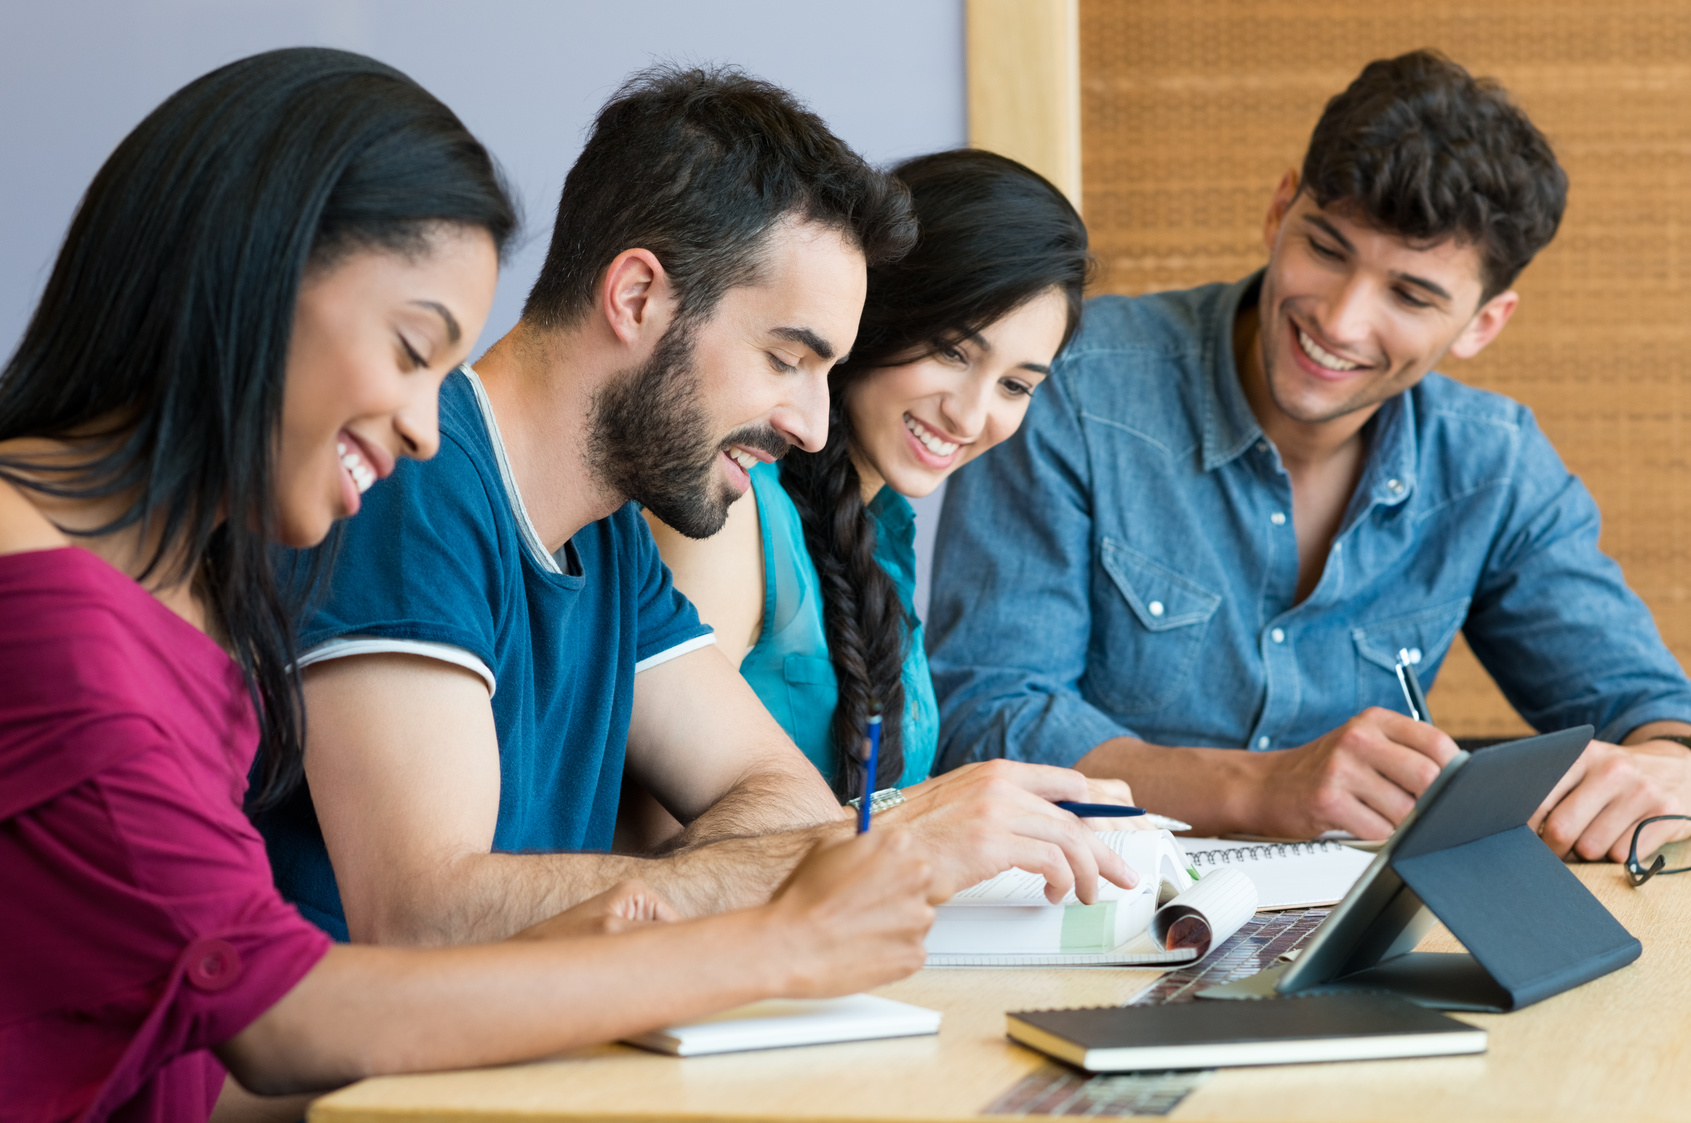 Fotolia_94851214_Happy-students-studying-together_M